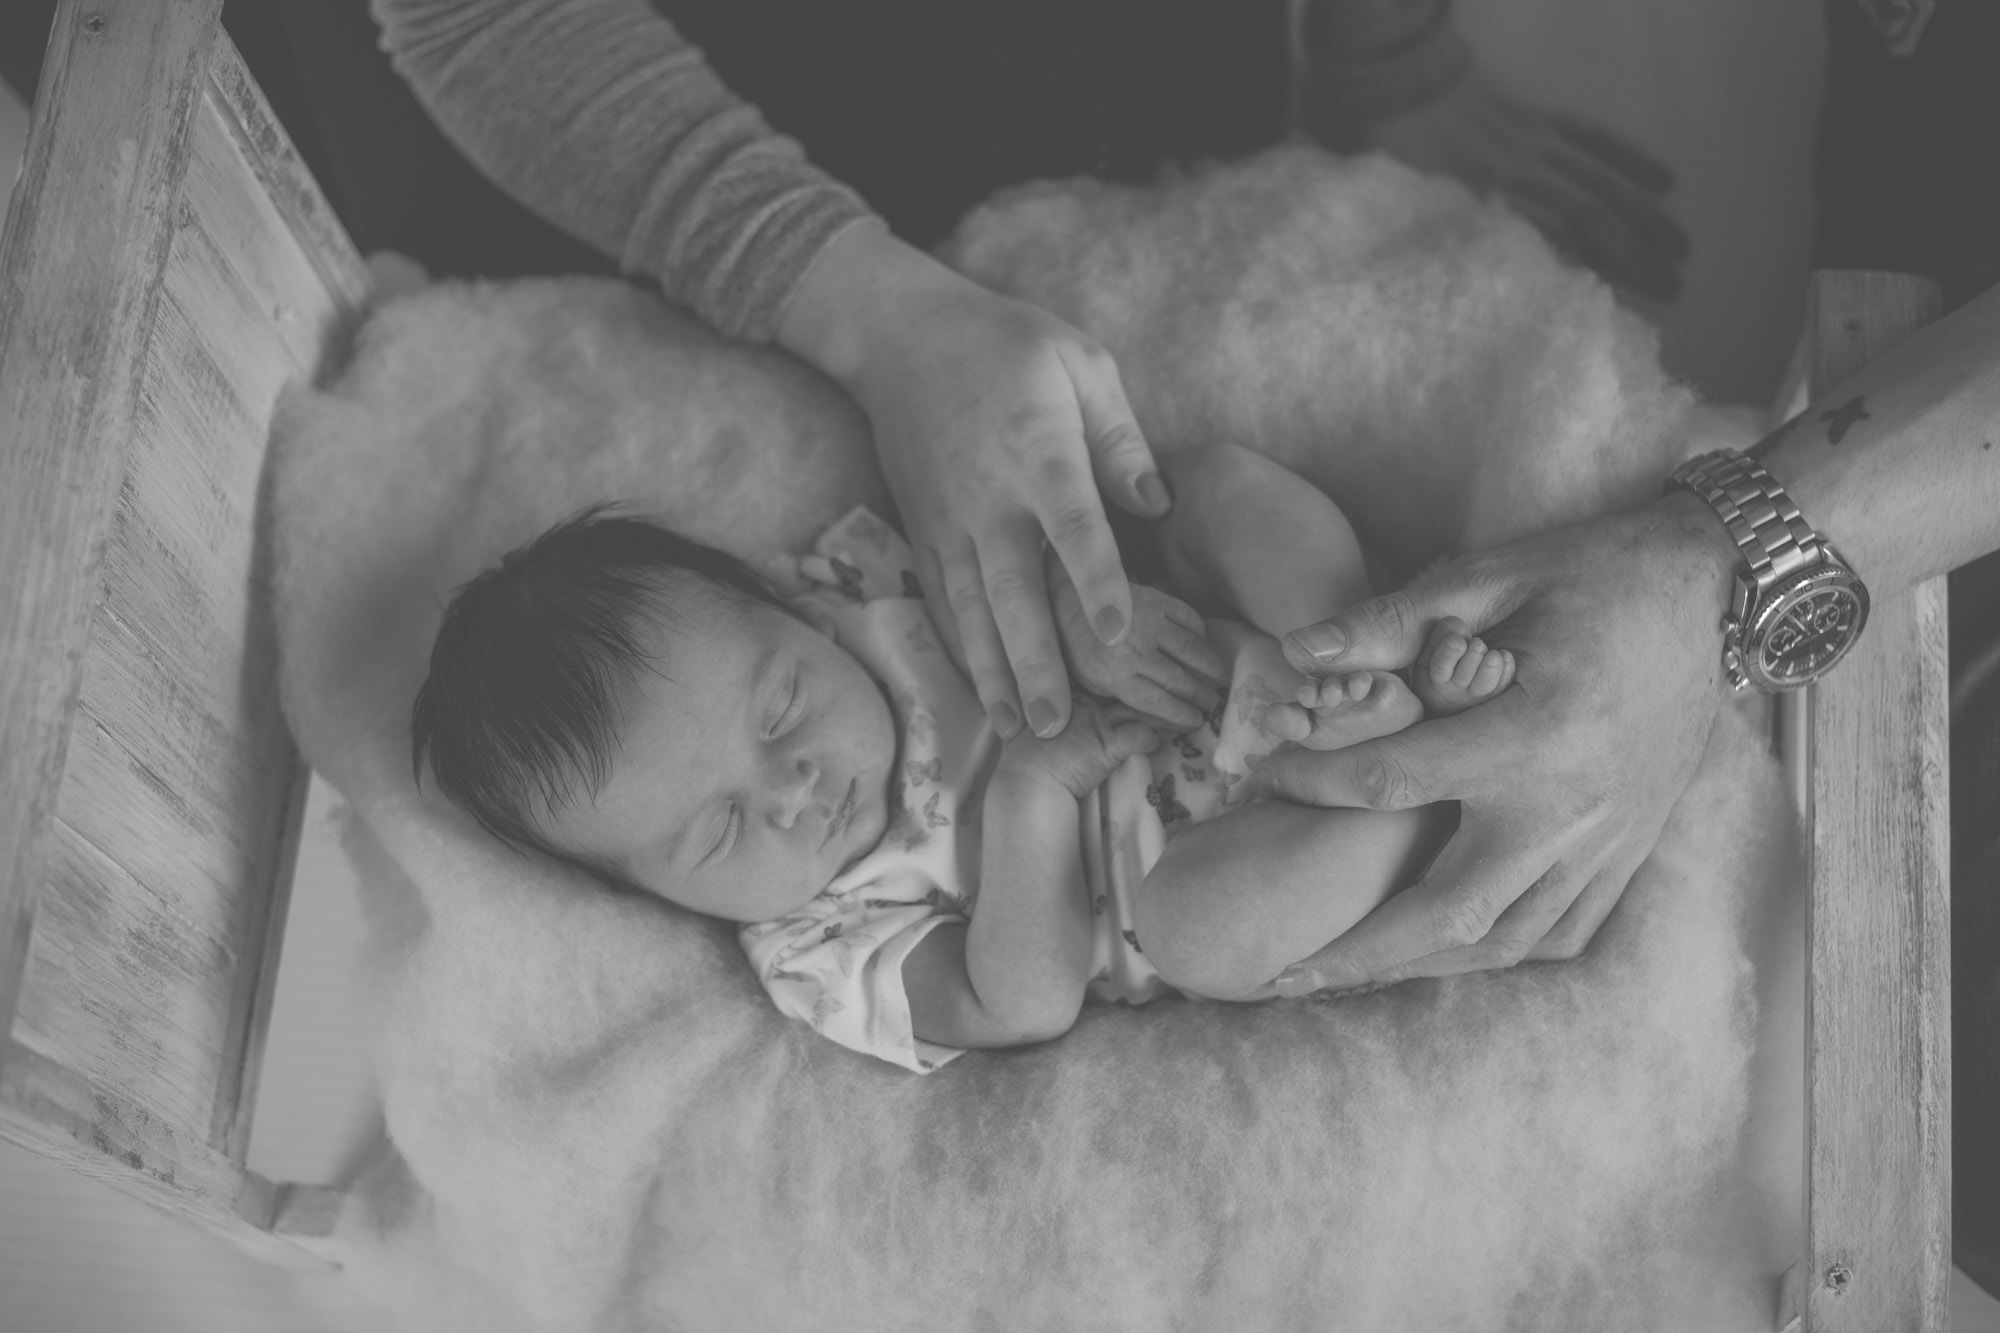 newborn-baby-family-photo-bradford-west-yorkshire-chicca-photography-11.jpg